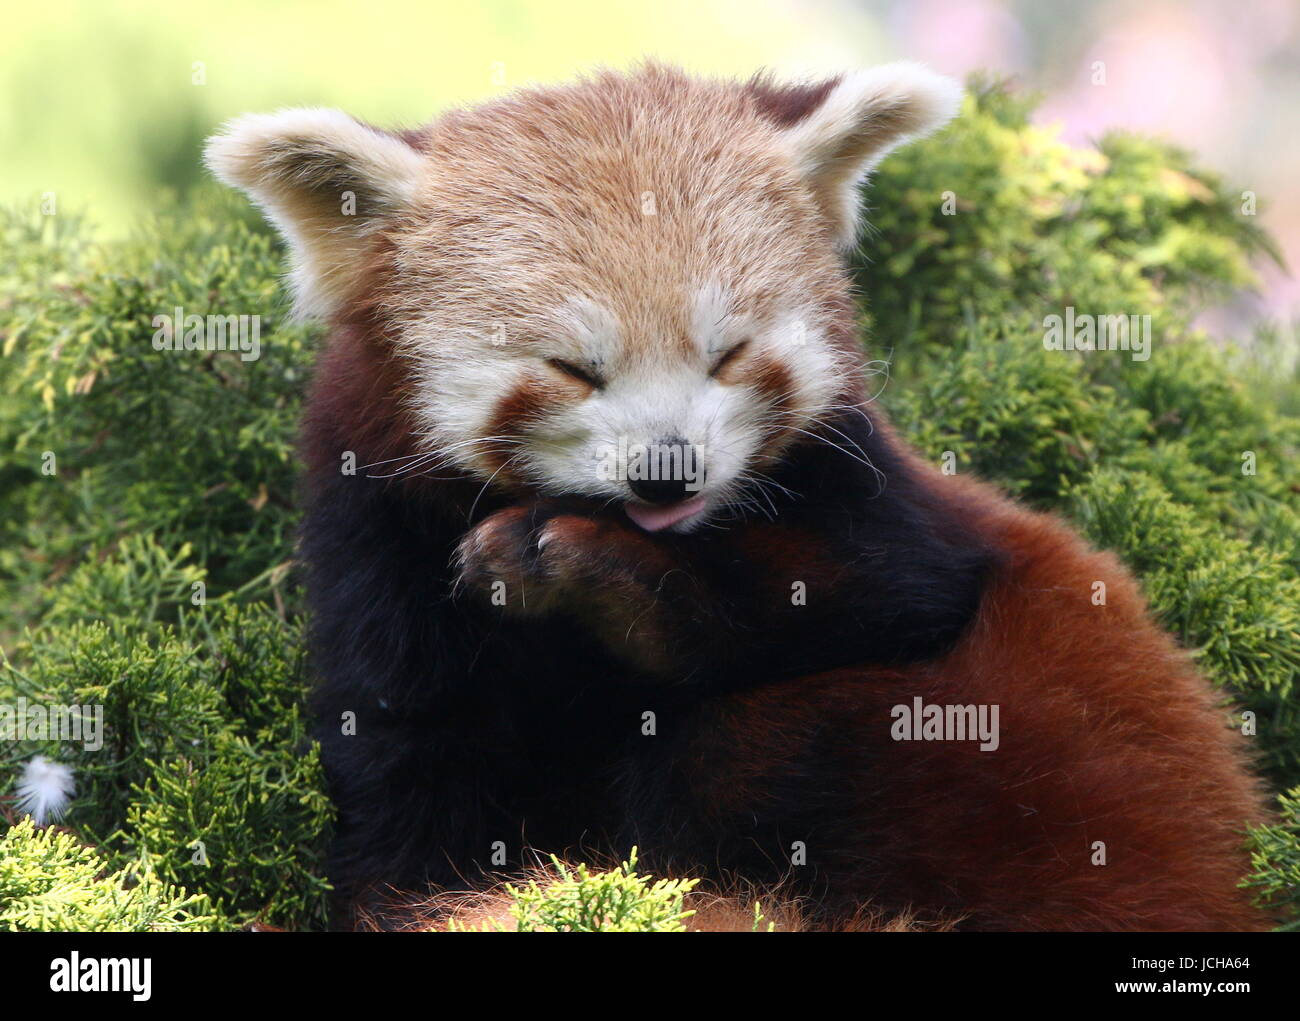 Asian Red Panda (Ailurus fulgens) in a tree, ready to take a nap. - Stock Image